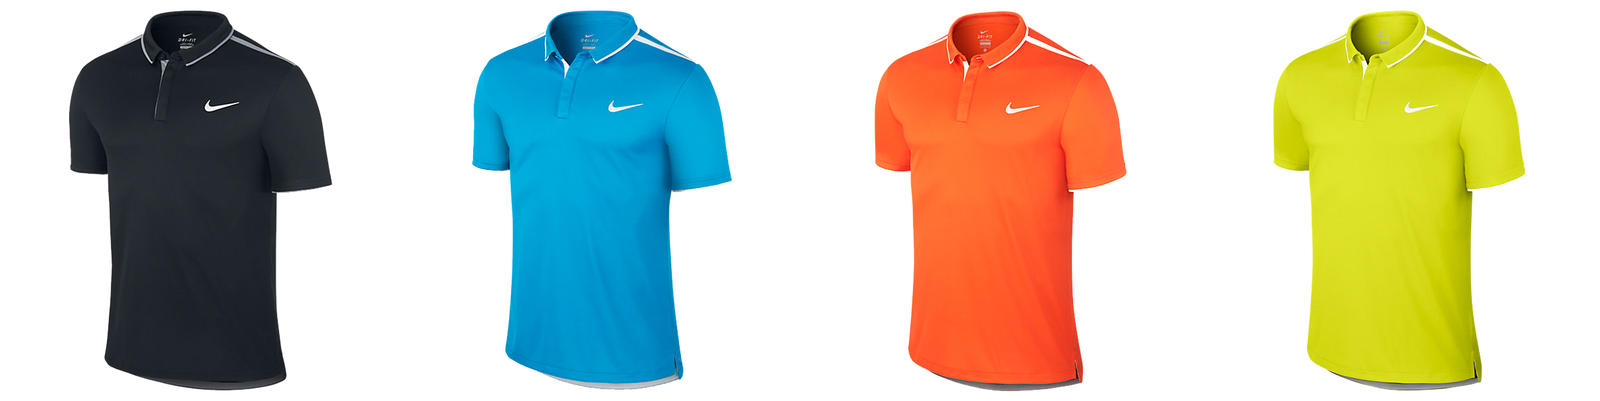 Nike Tennis ColorDry Polos